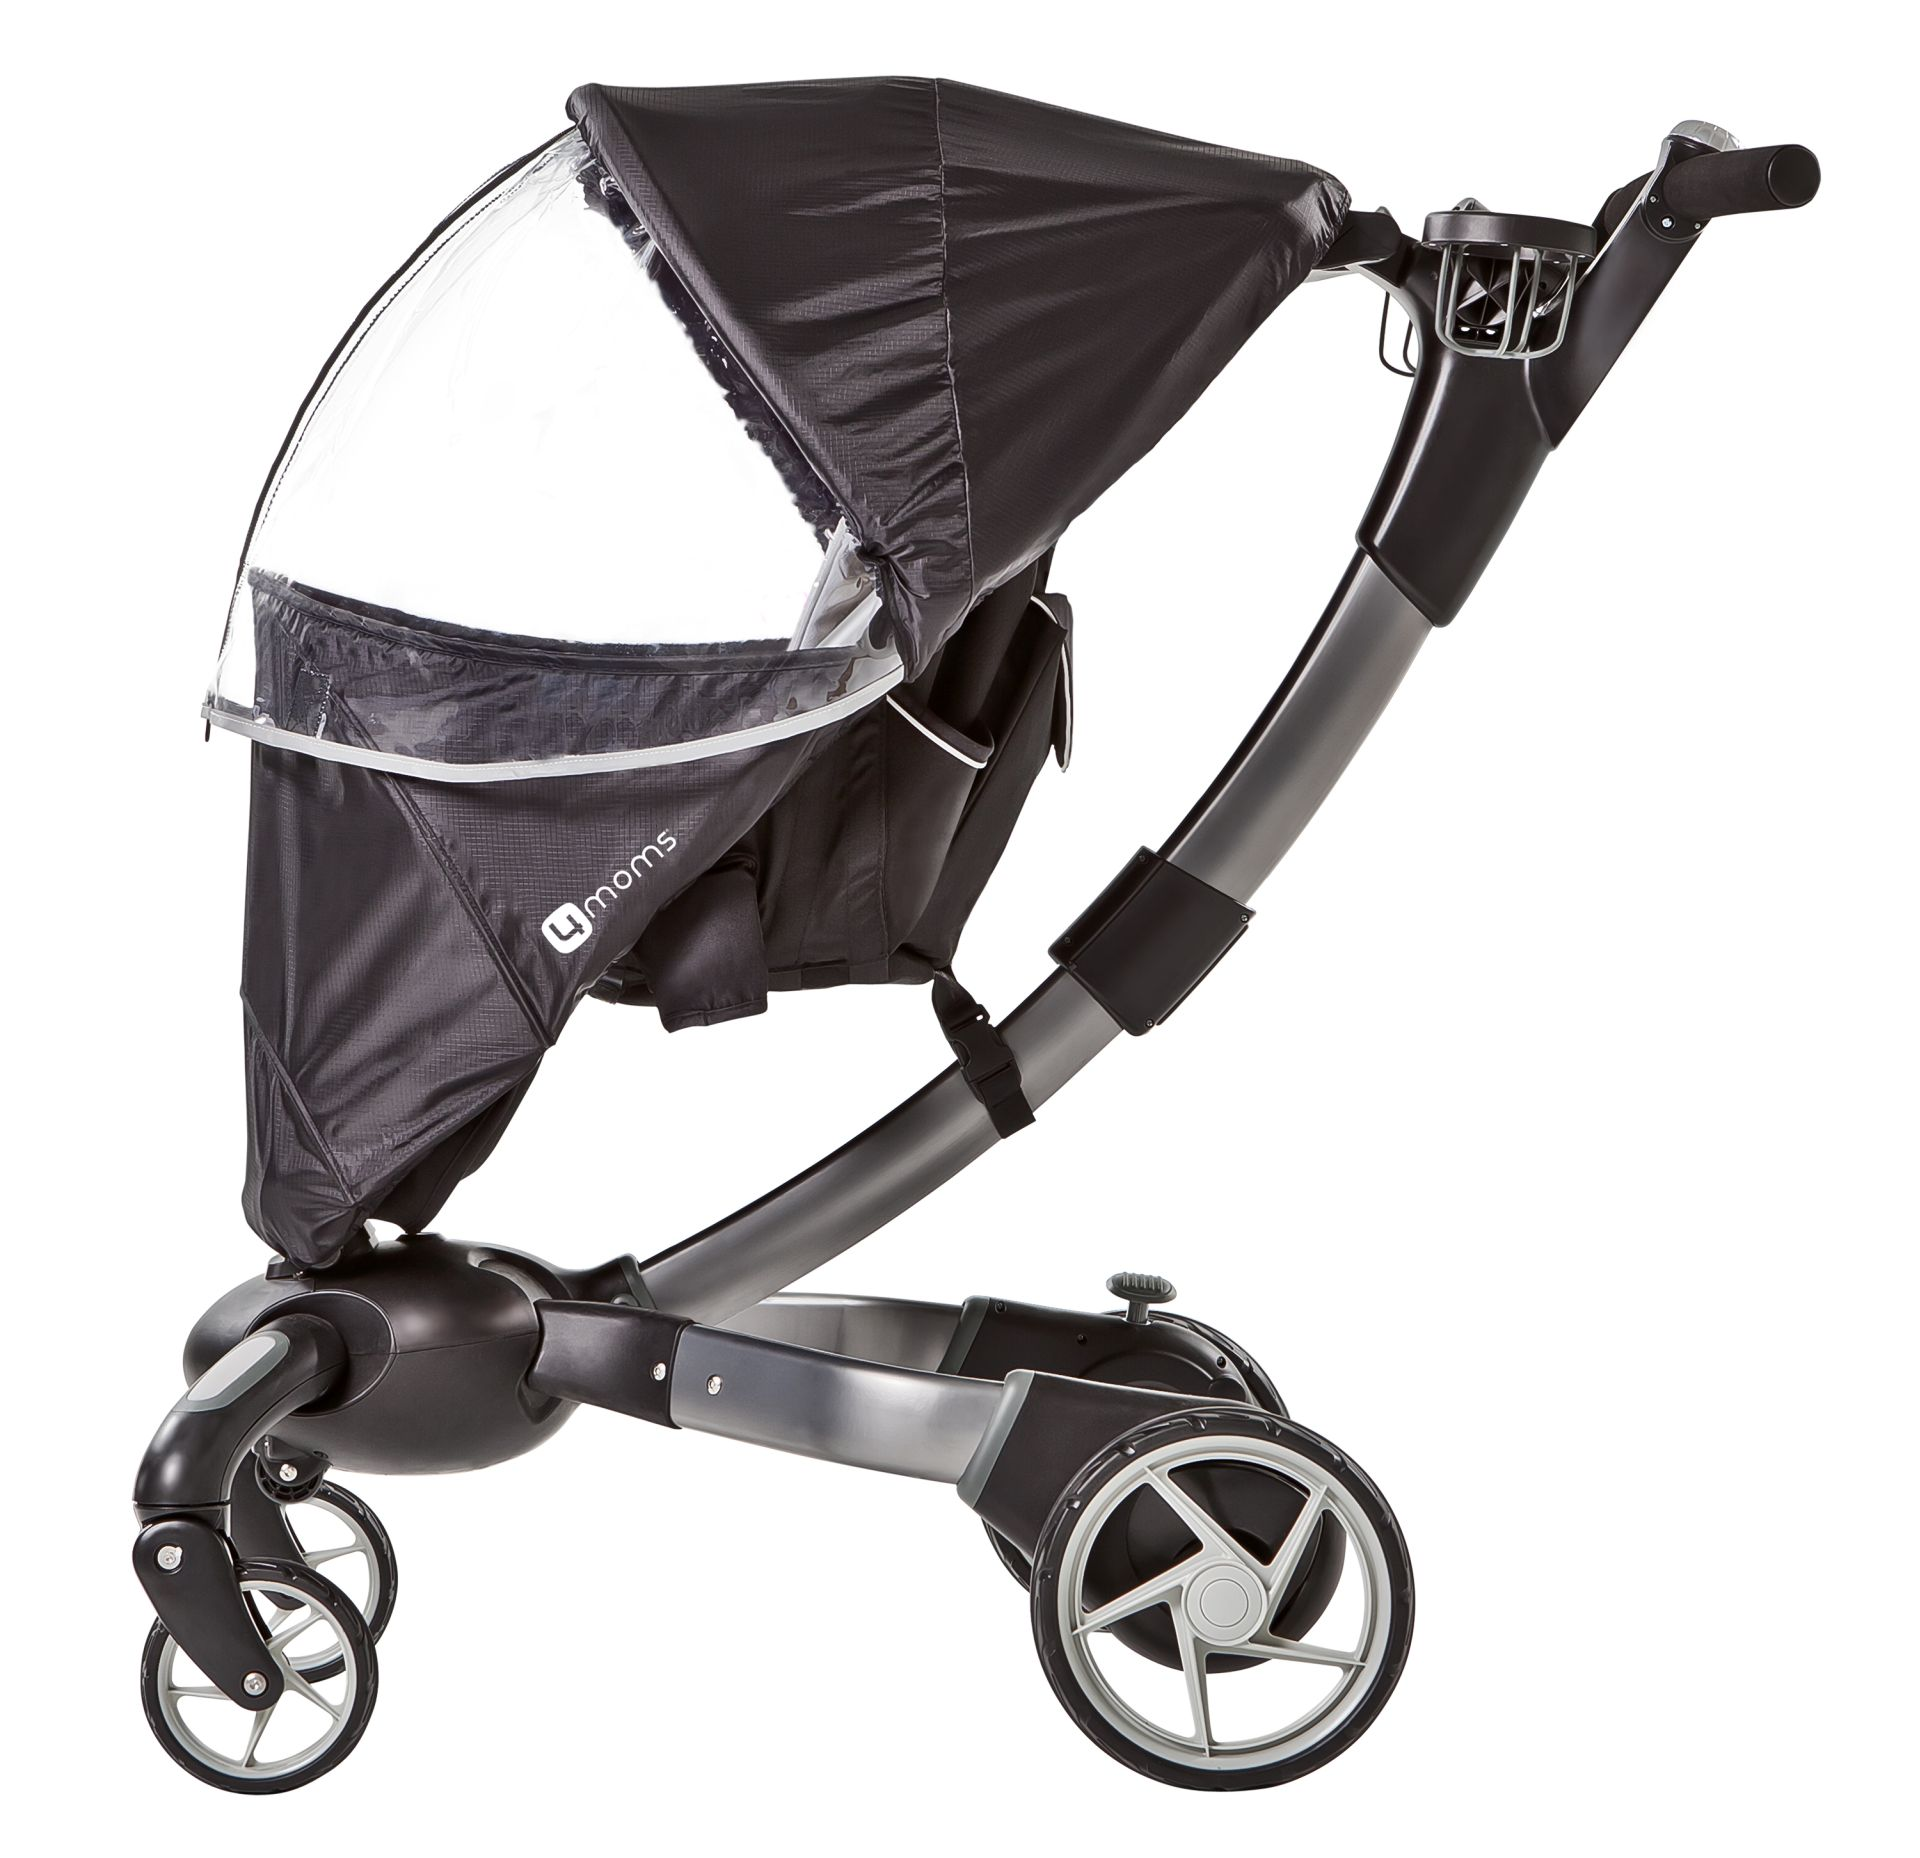 🥇 4moms Origami Stroller Review & Buying Guide 2019 | Origami ... | 1858x1920